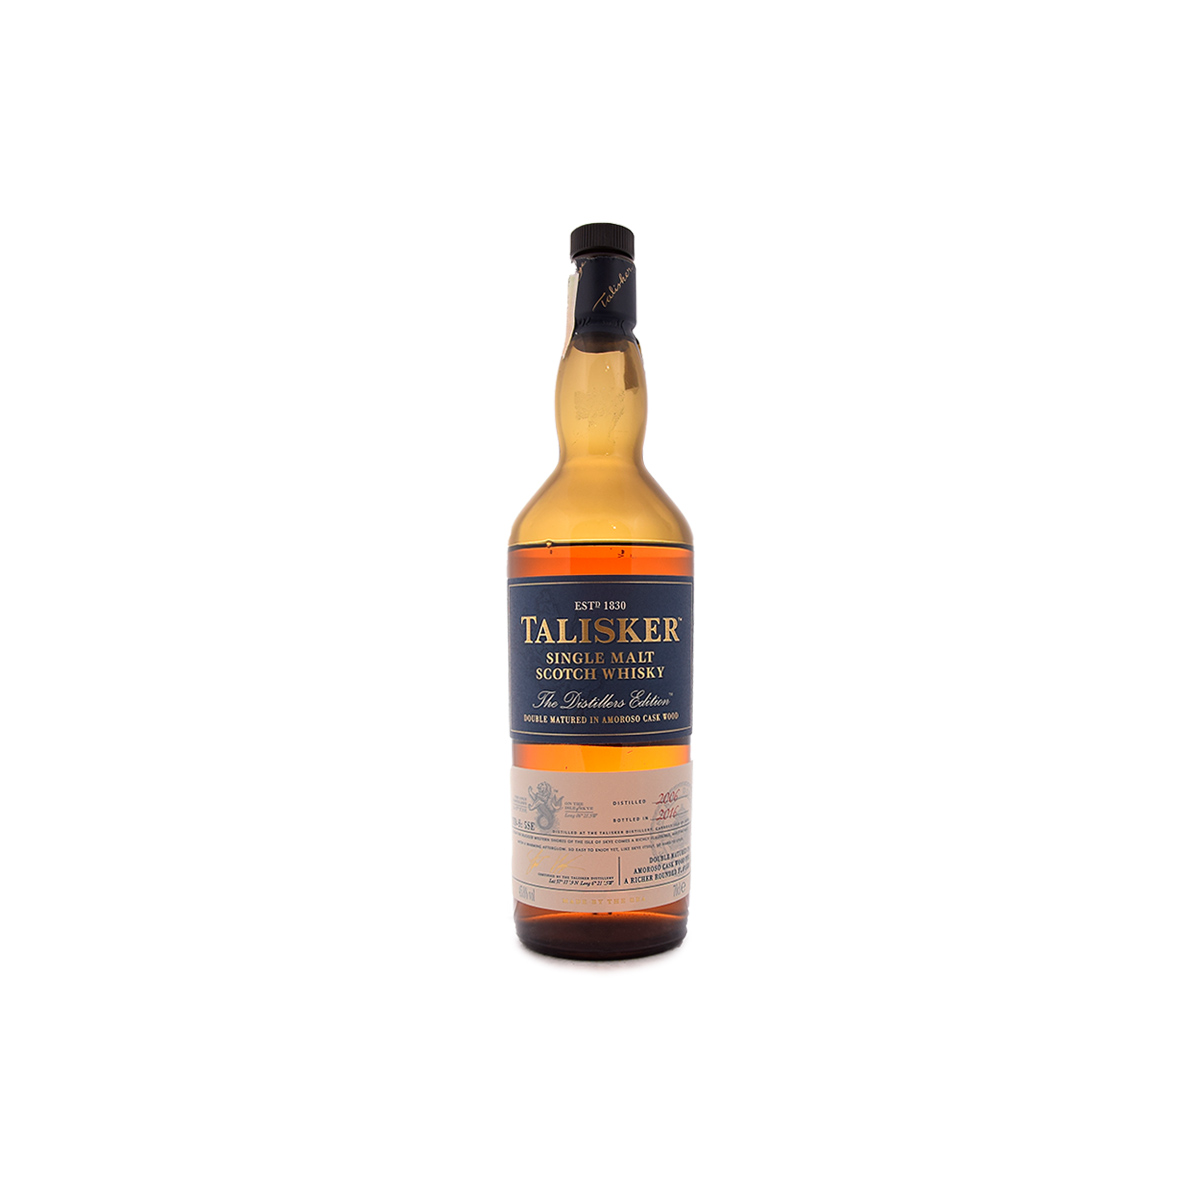 Talisker The Distillers Edition (45.8%) - 30 ml.